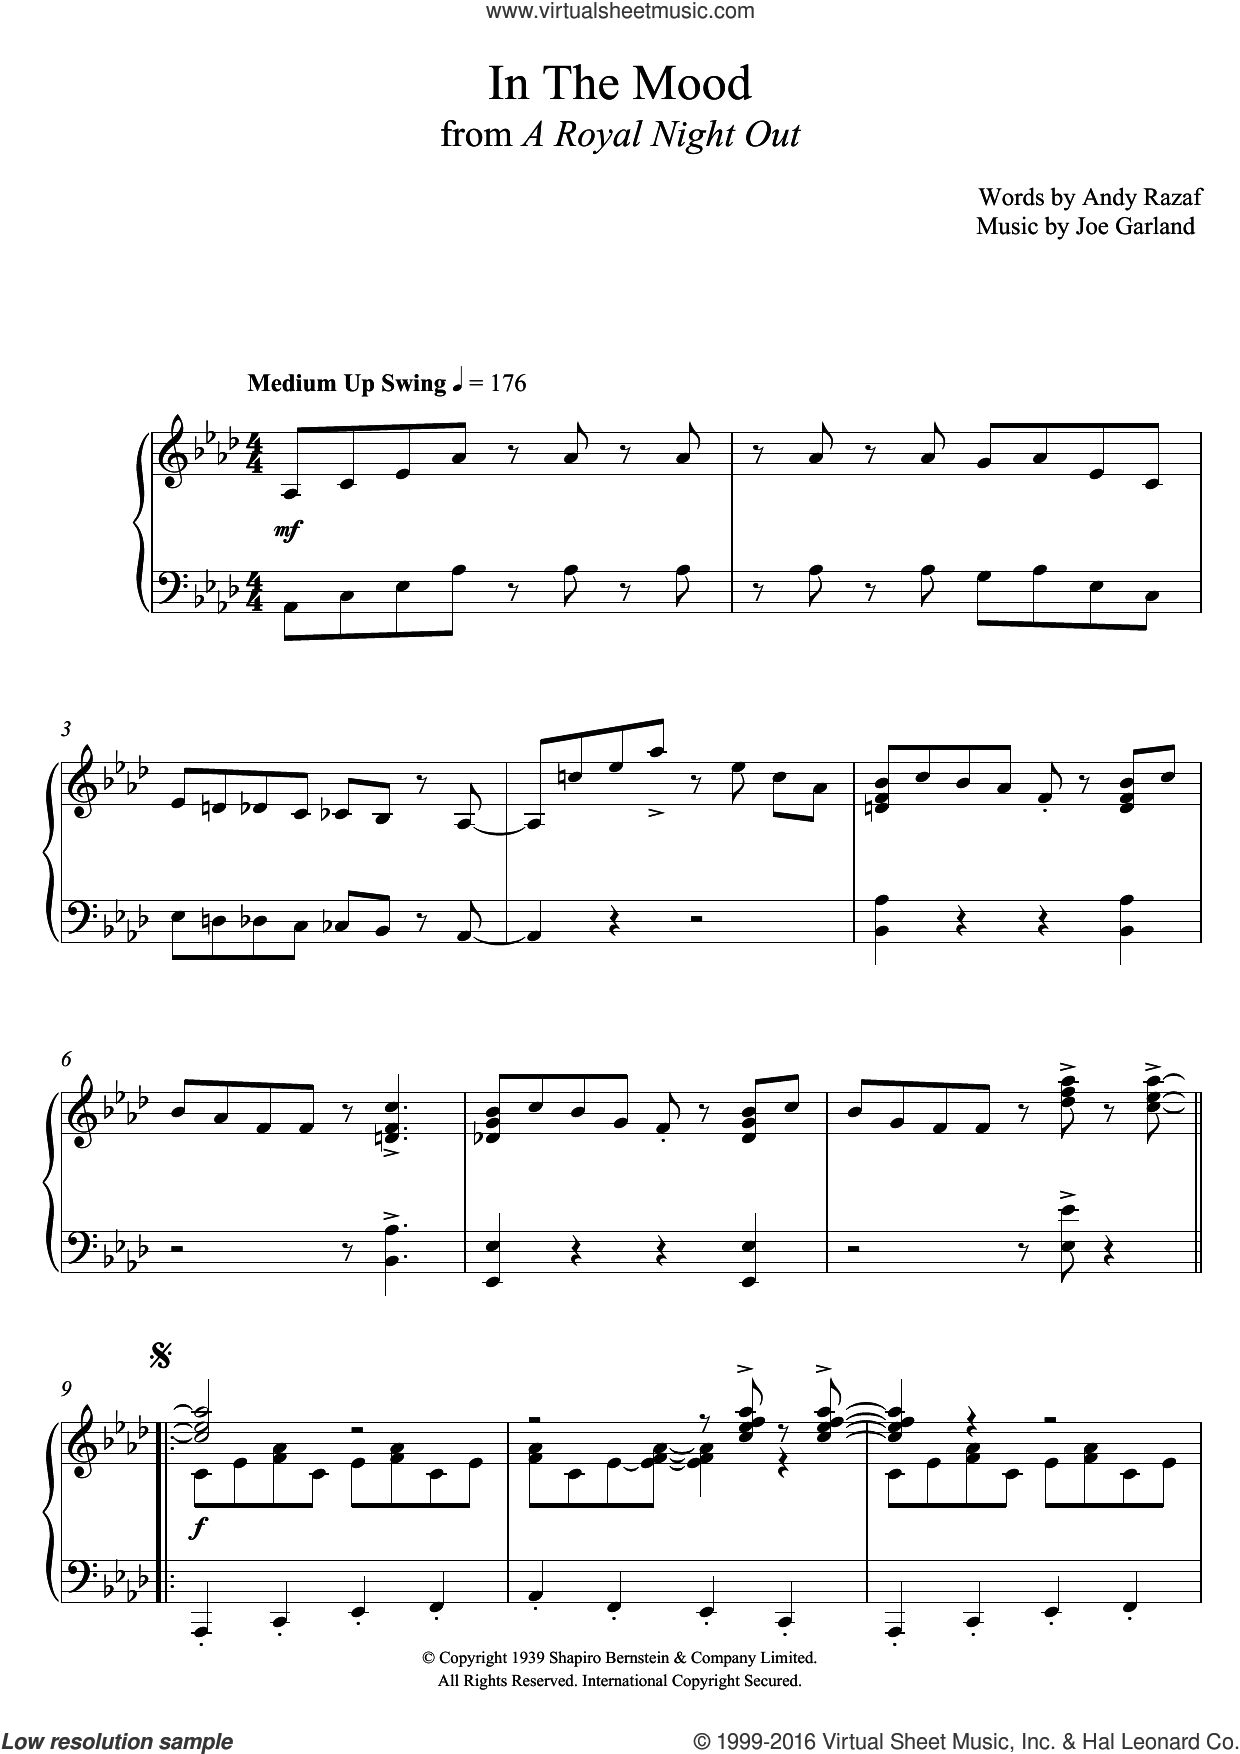 In The Mood sheet music for piano solo by Paul Englishby, Andy Razaf and Joe Garland, intermediate. Score Image Preview.